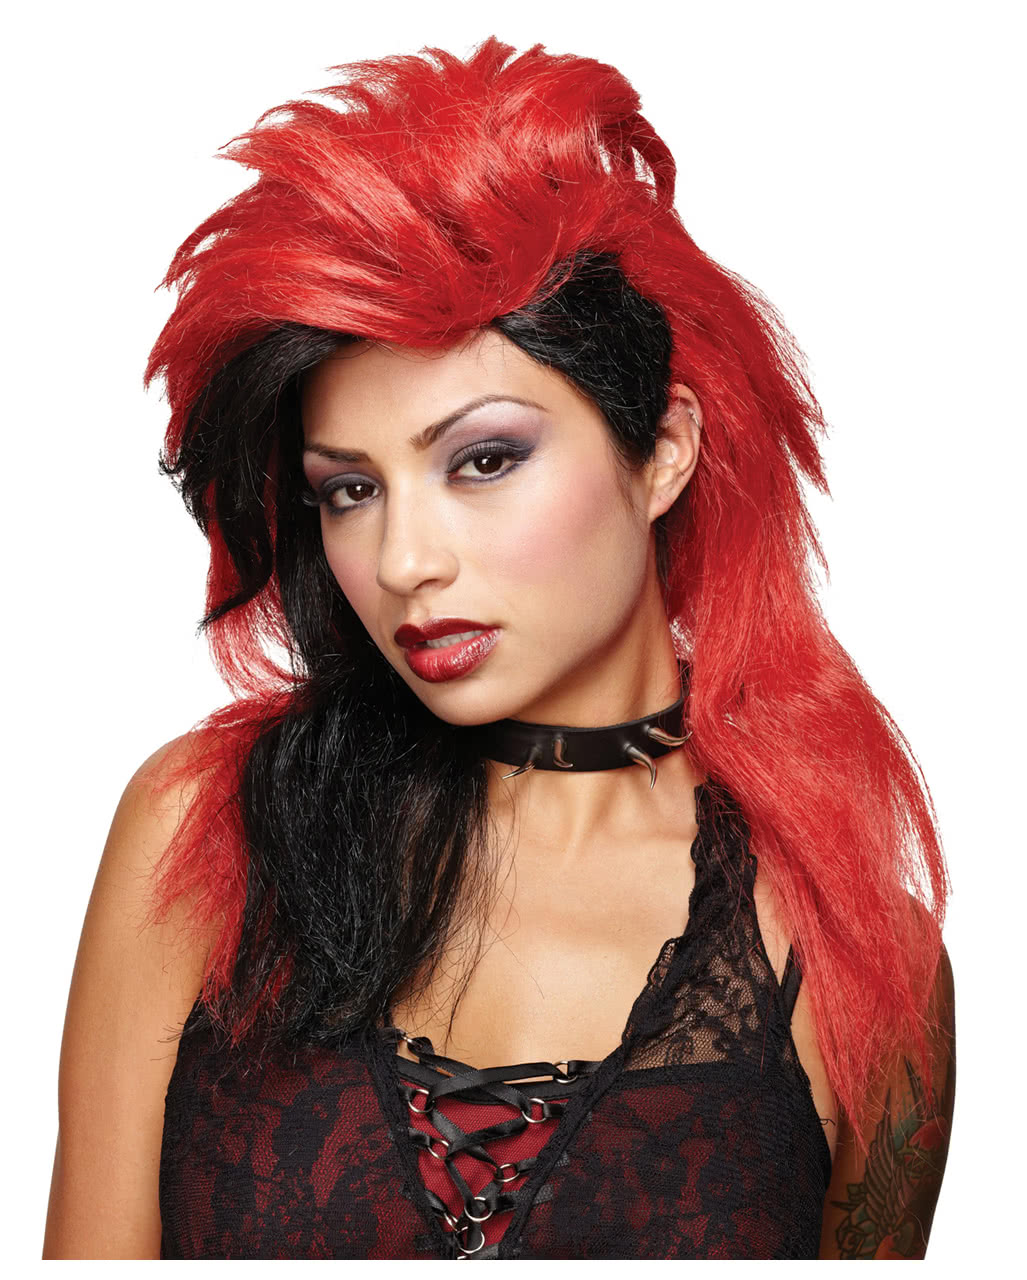 Punk Rock Perucke Rot Schwarz Fur Karneval Horror Shop Com